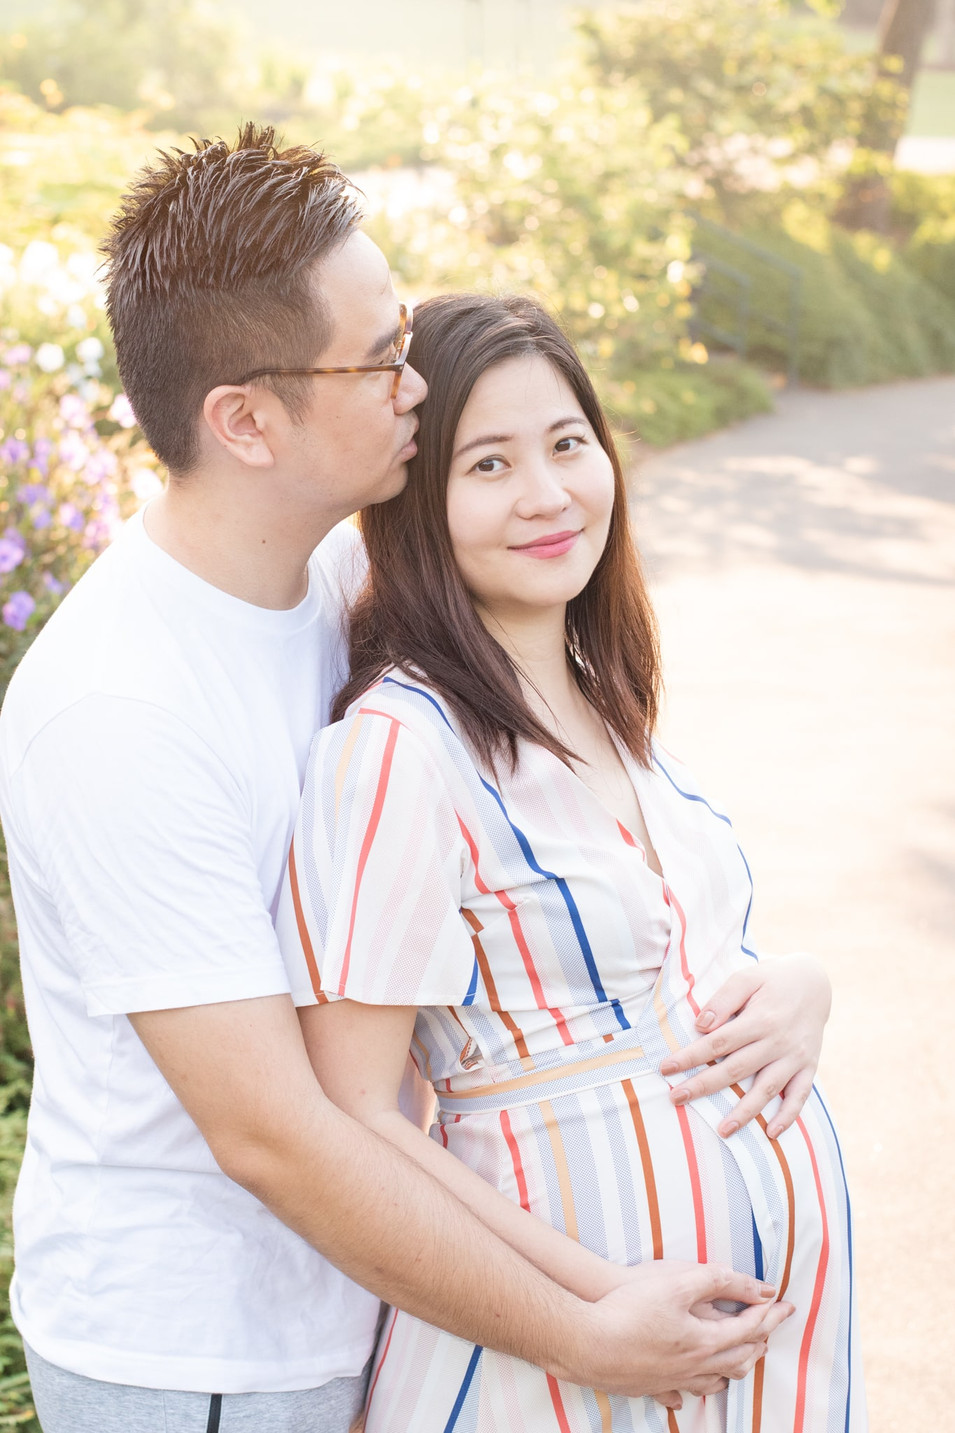 Singapore Lifestyle Photographer | Nic Imai Photography | outdoor maternity photography Botanic Gardens Singapore